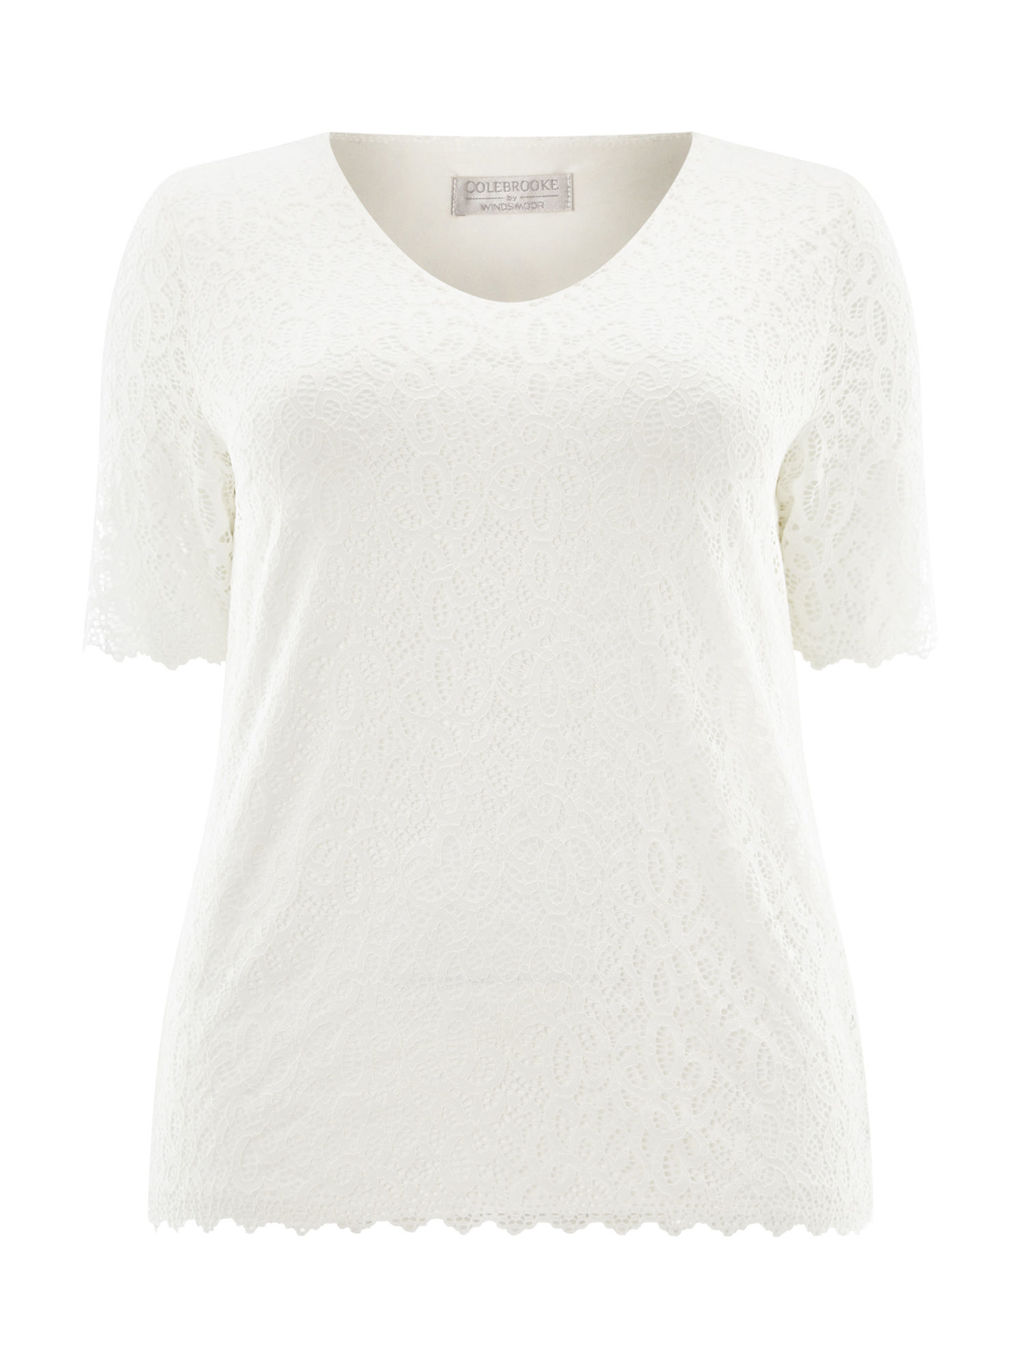 Lace Jersey Top, Ivory - neckline: v-neck; predominant colour: ivory/cream; occasions: casual, creative work; length: standard; style: top; fibres: polyester/polyamide - stretch; fit: body skimming; sleeve length: short sleeve; sleeve style: standard; pattern type: fabric; pattern size: light/subtle; pattern: patterned/print; texture group: jersey - stretchy/drapey; season: a/w 2015